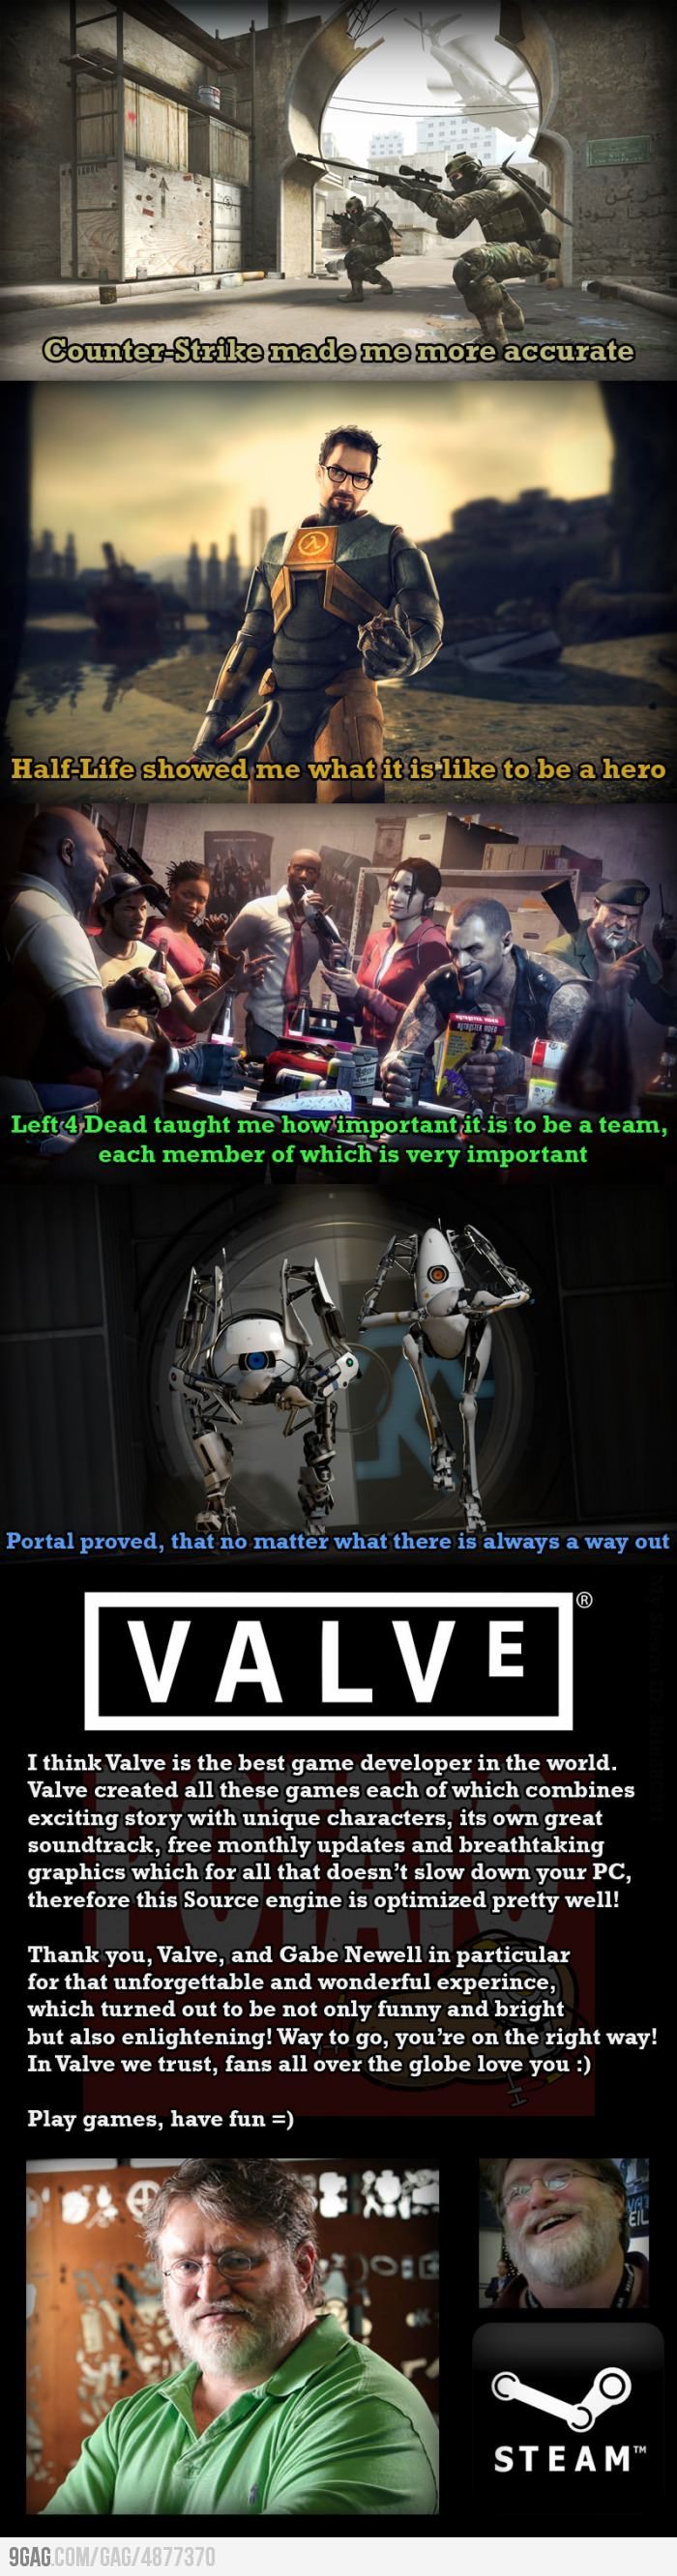 Valve, one of the best game developers ever in the history of everything